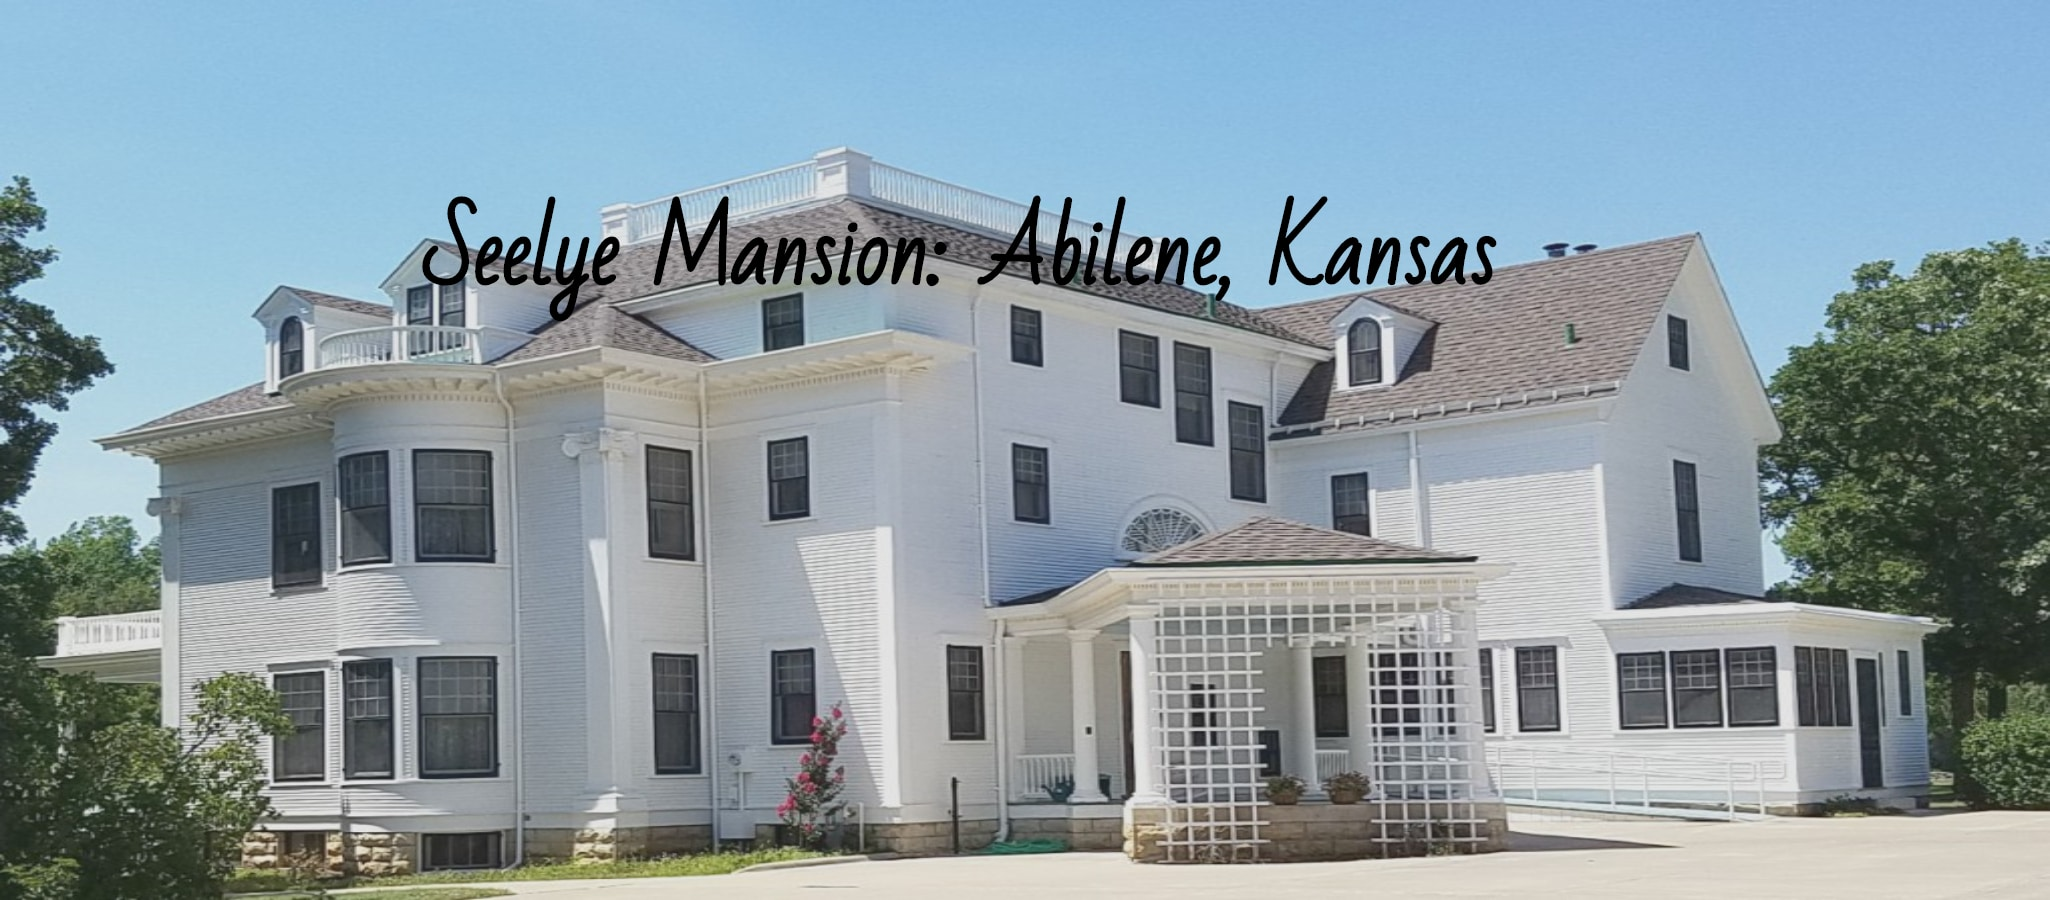 Seelye Mansion: History Alive In Abilene, Kansas